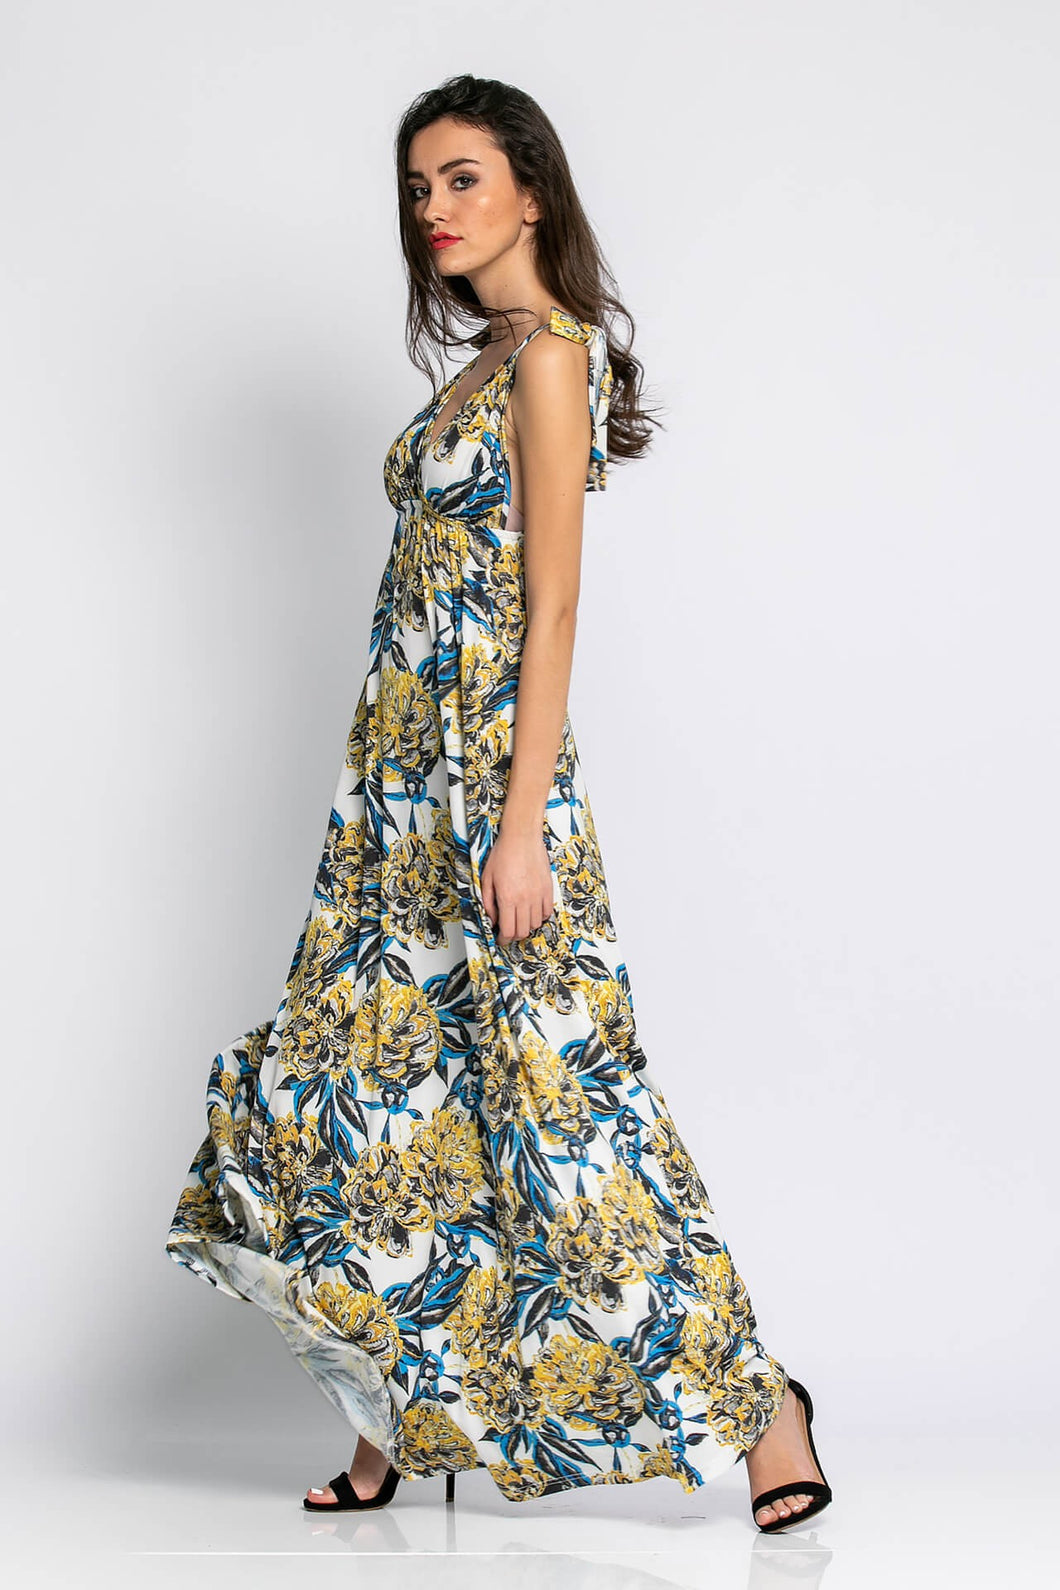 Floral dress with thin straps